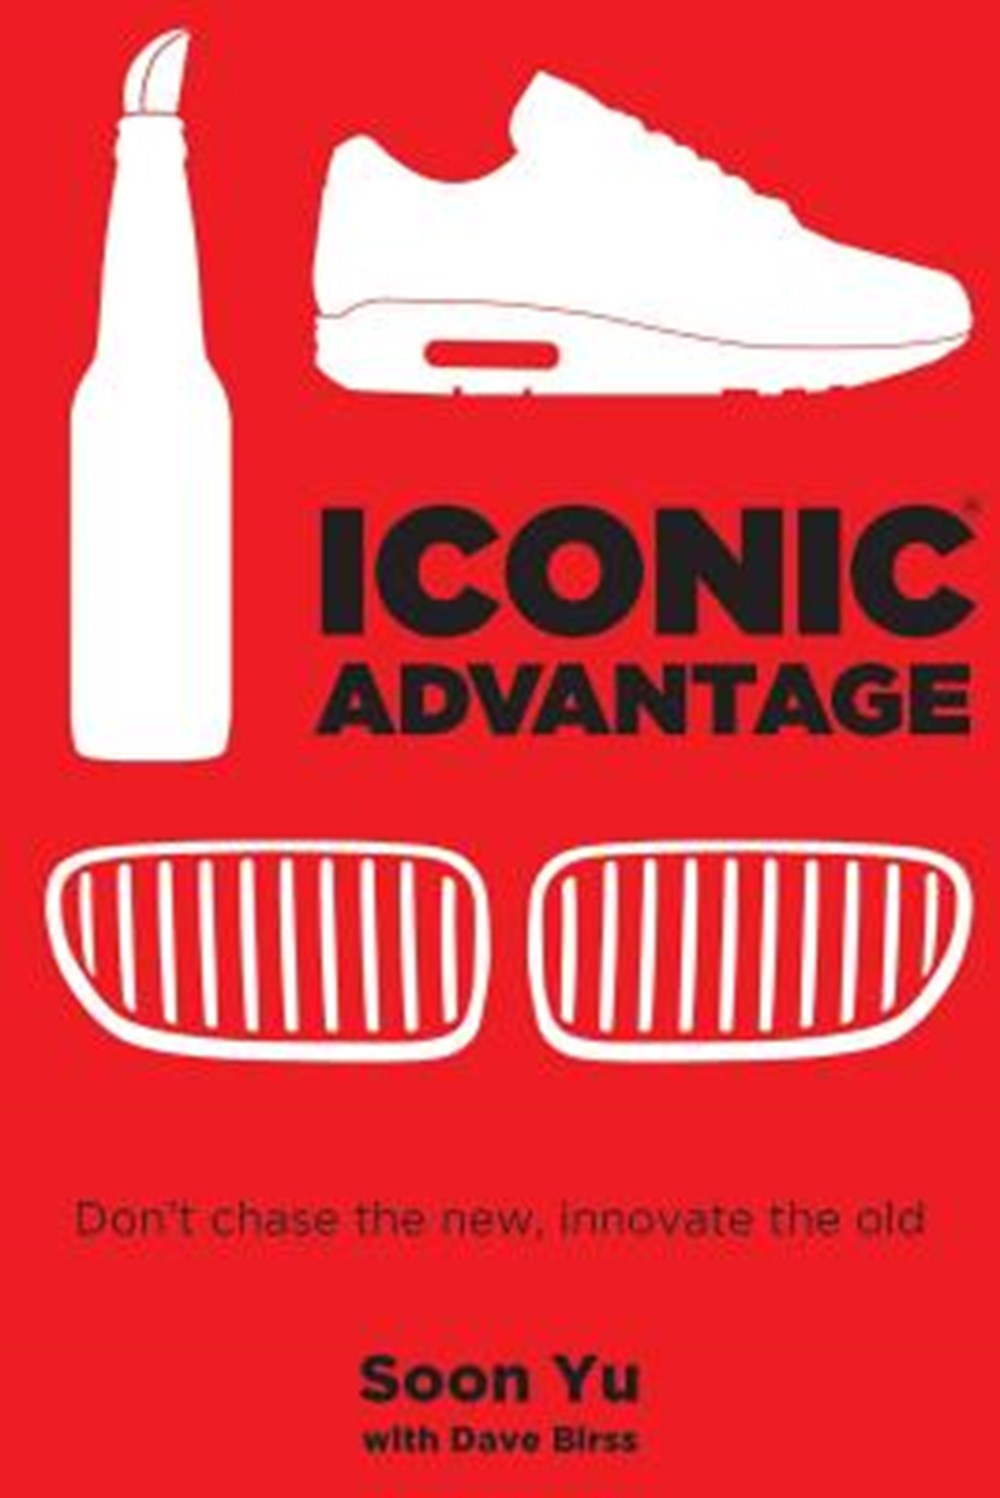 Iconic Advantage Don't Chase the New, Innovate the Old